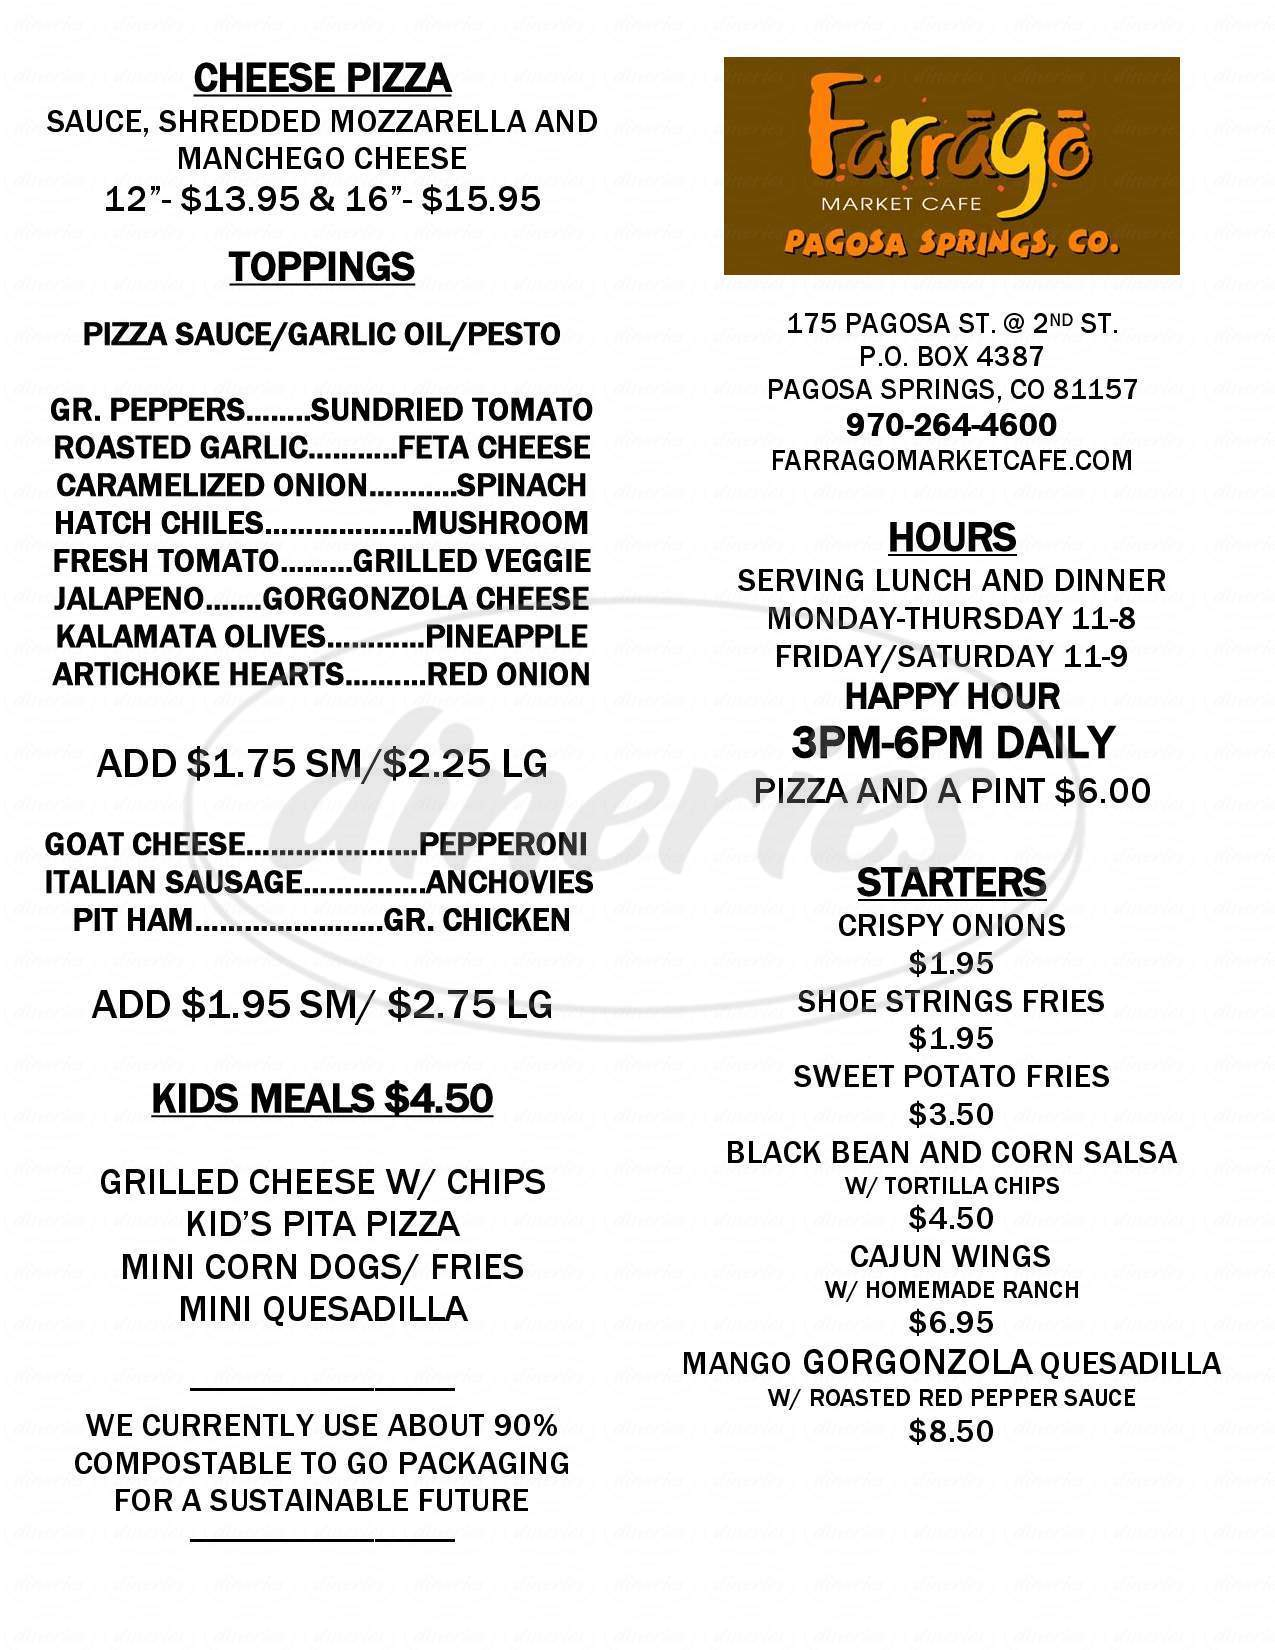 menu for Farrago Market Cafe